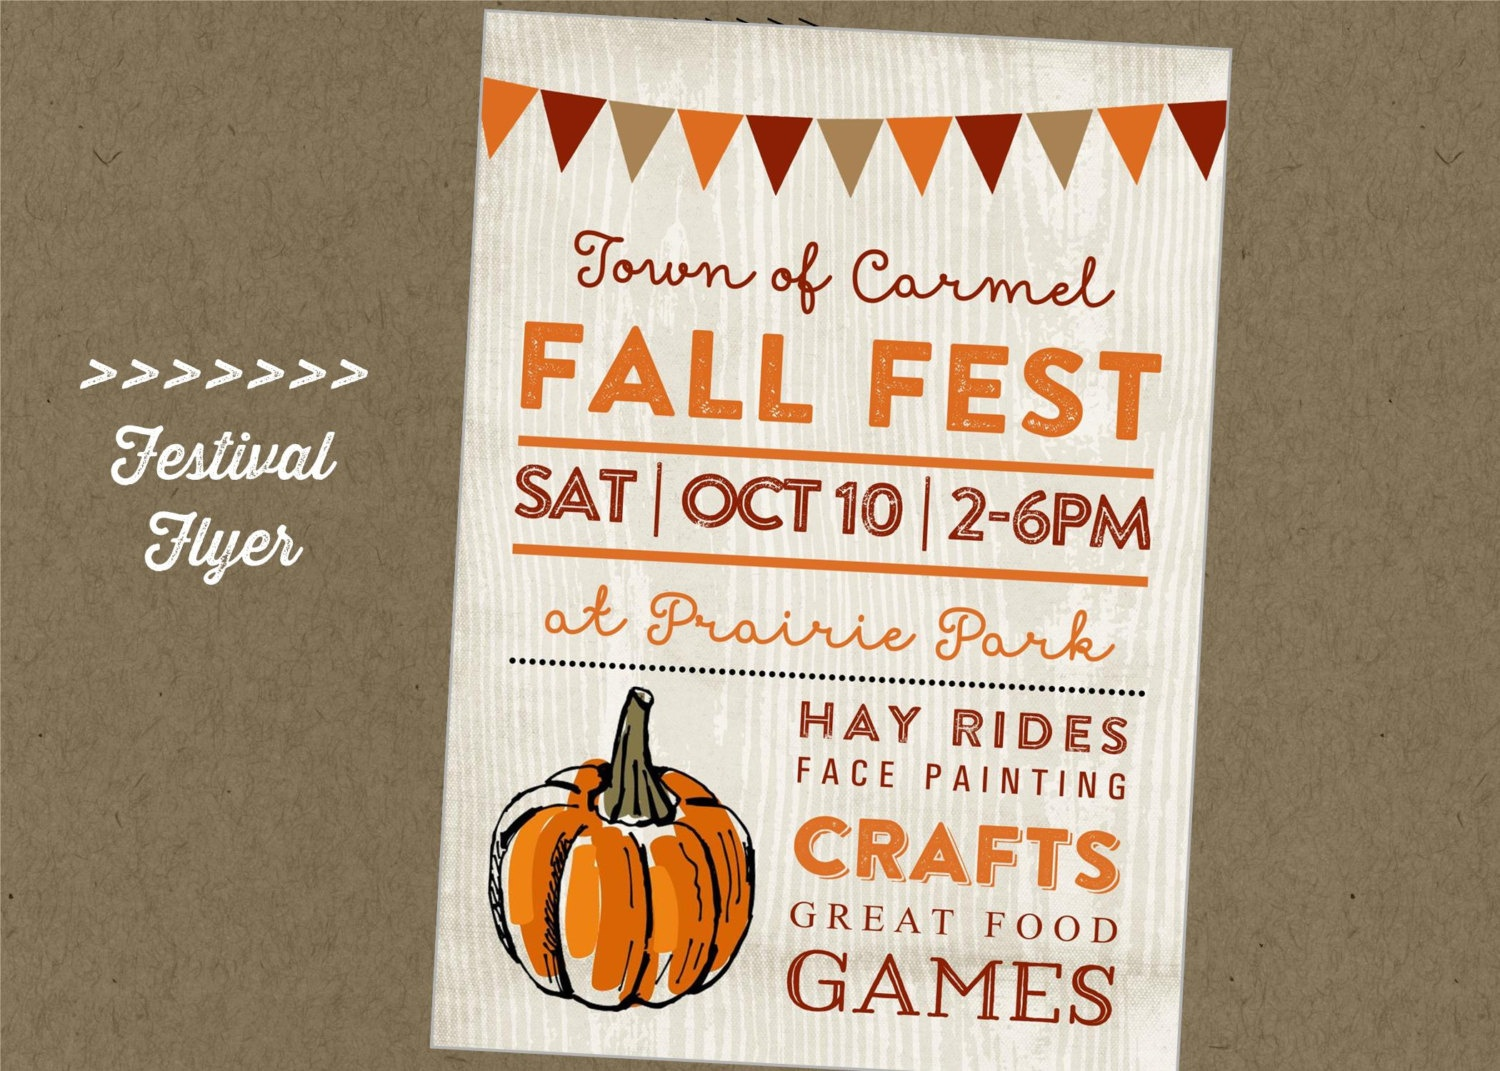 010 Fall Festival Flyer Templates Free Template Frightening Ideas - Free Printable Fall Festival Flyer Templates